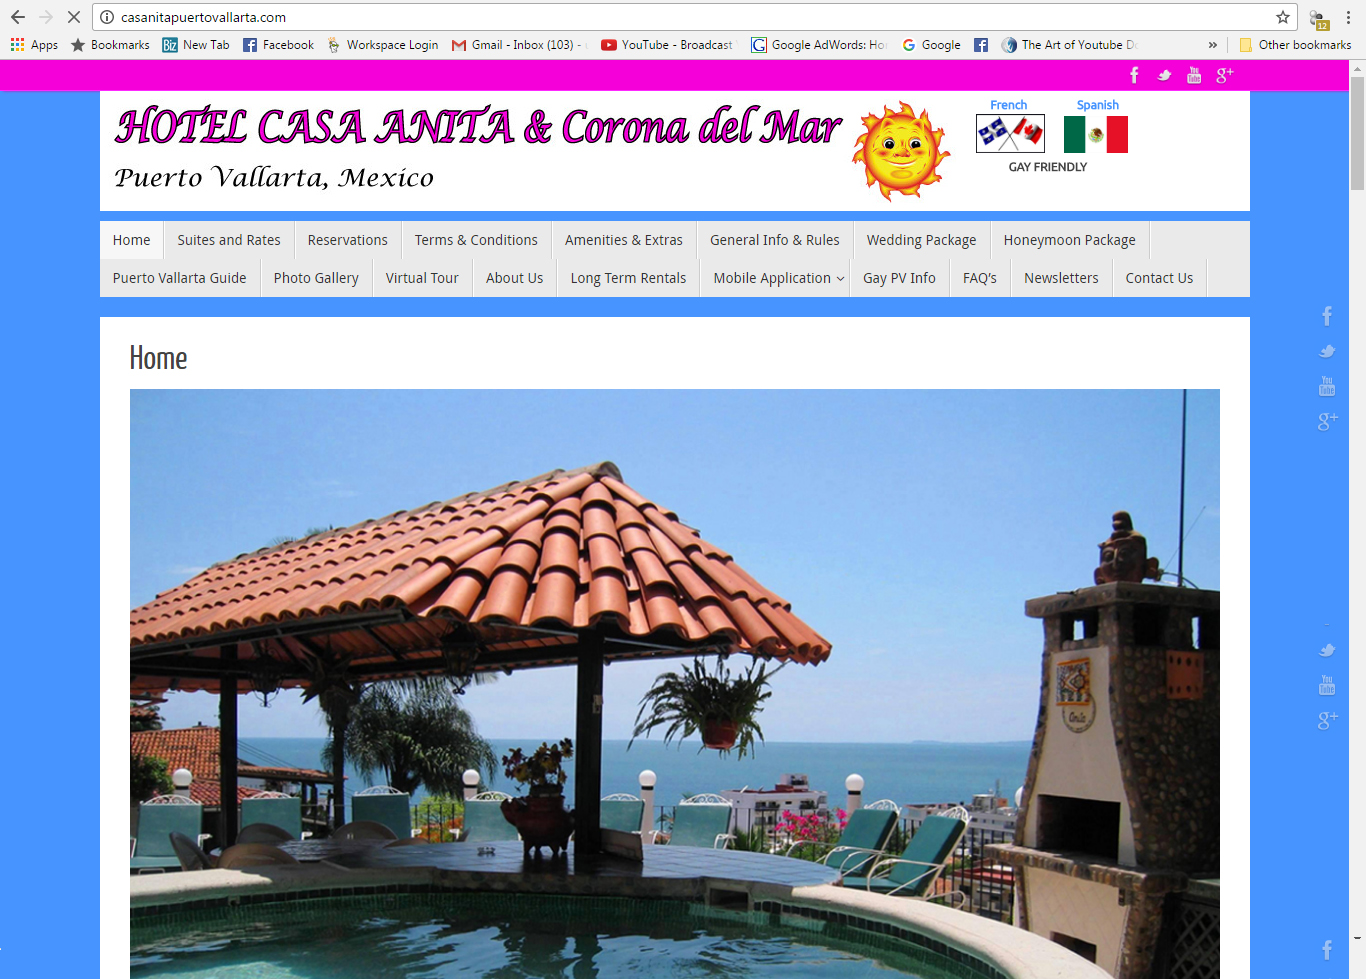 Hotel Casa Anita Website Design